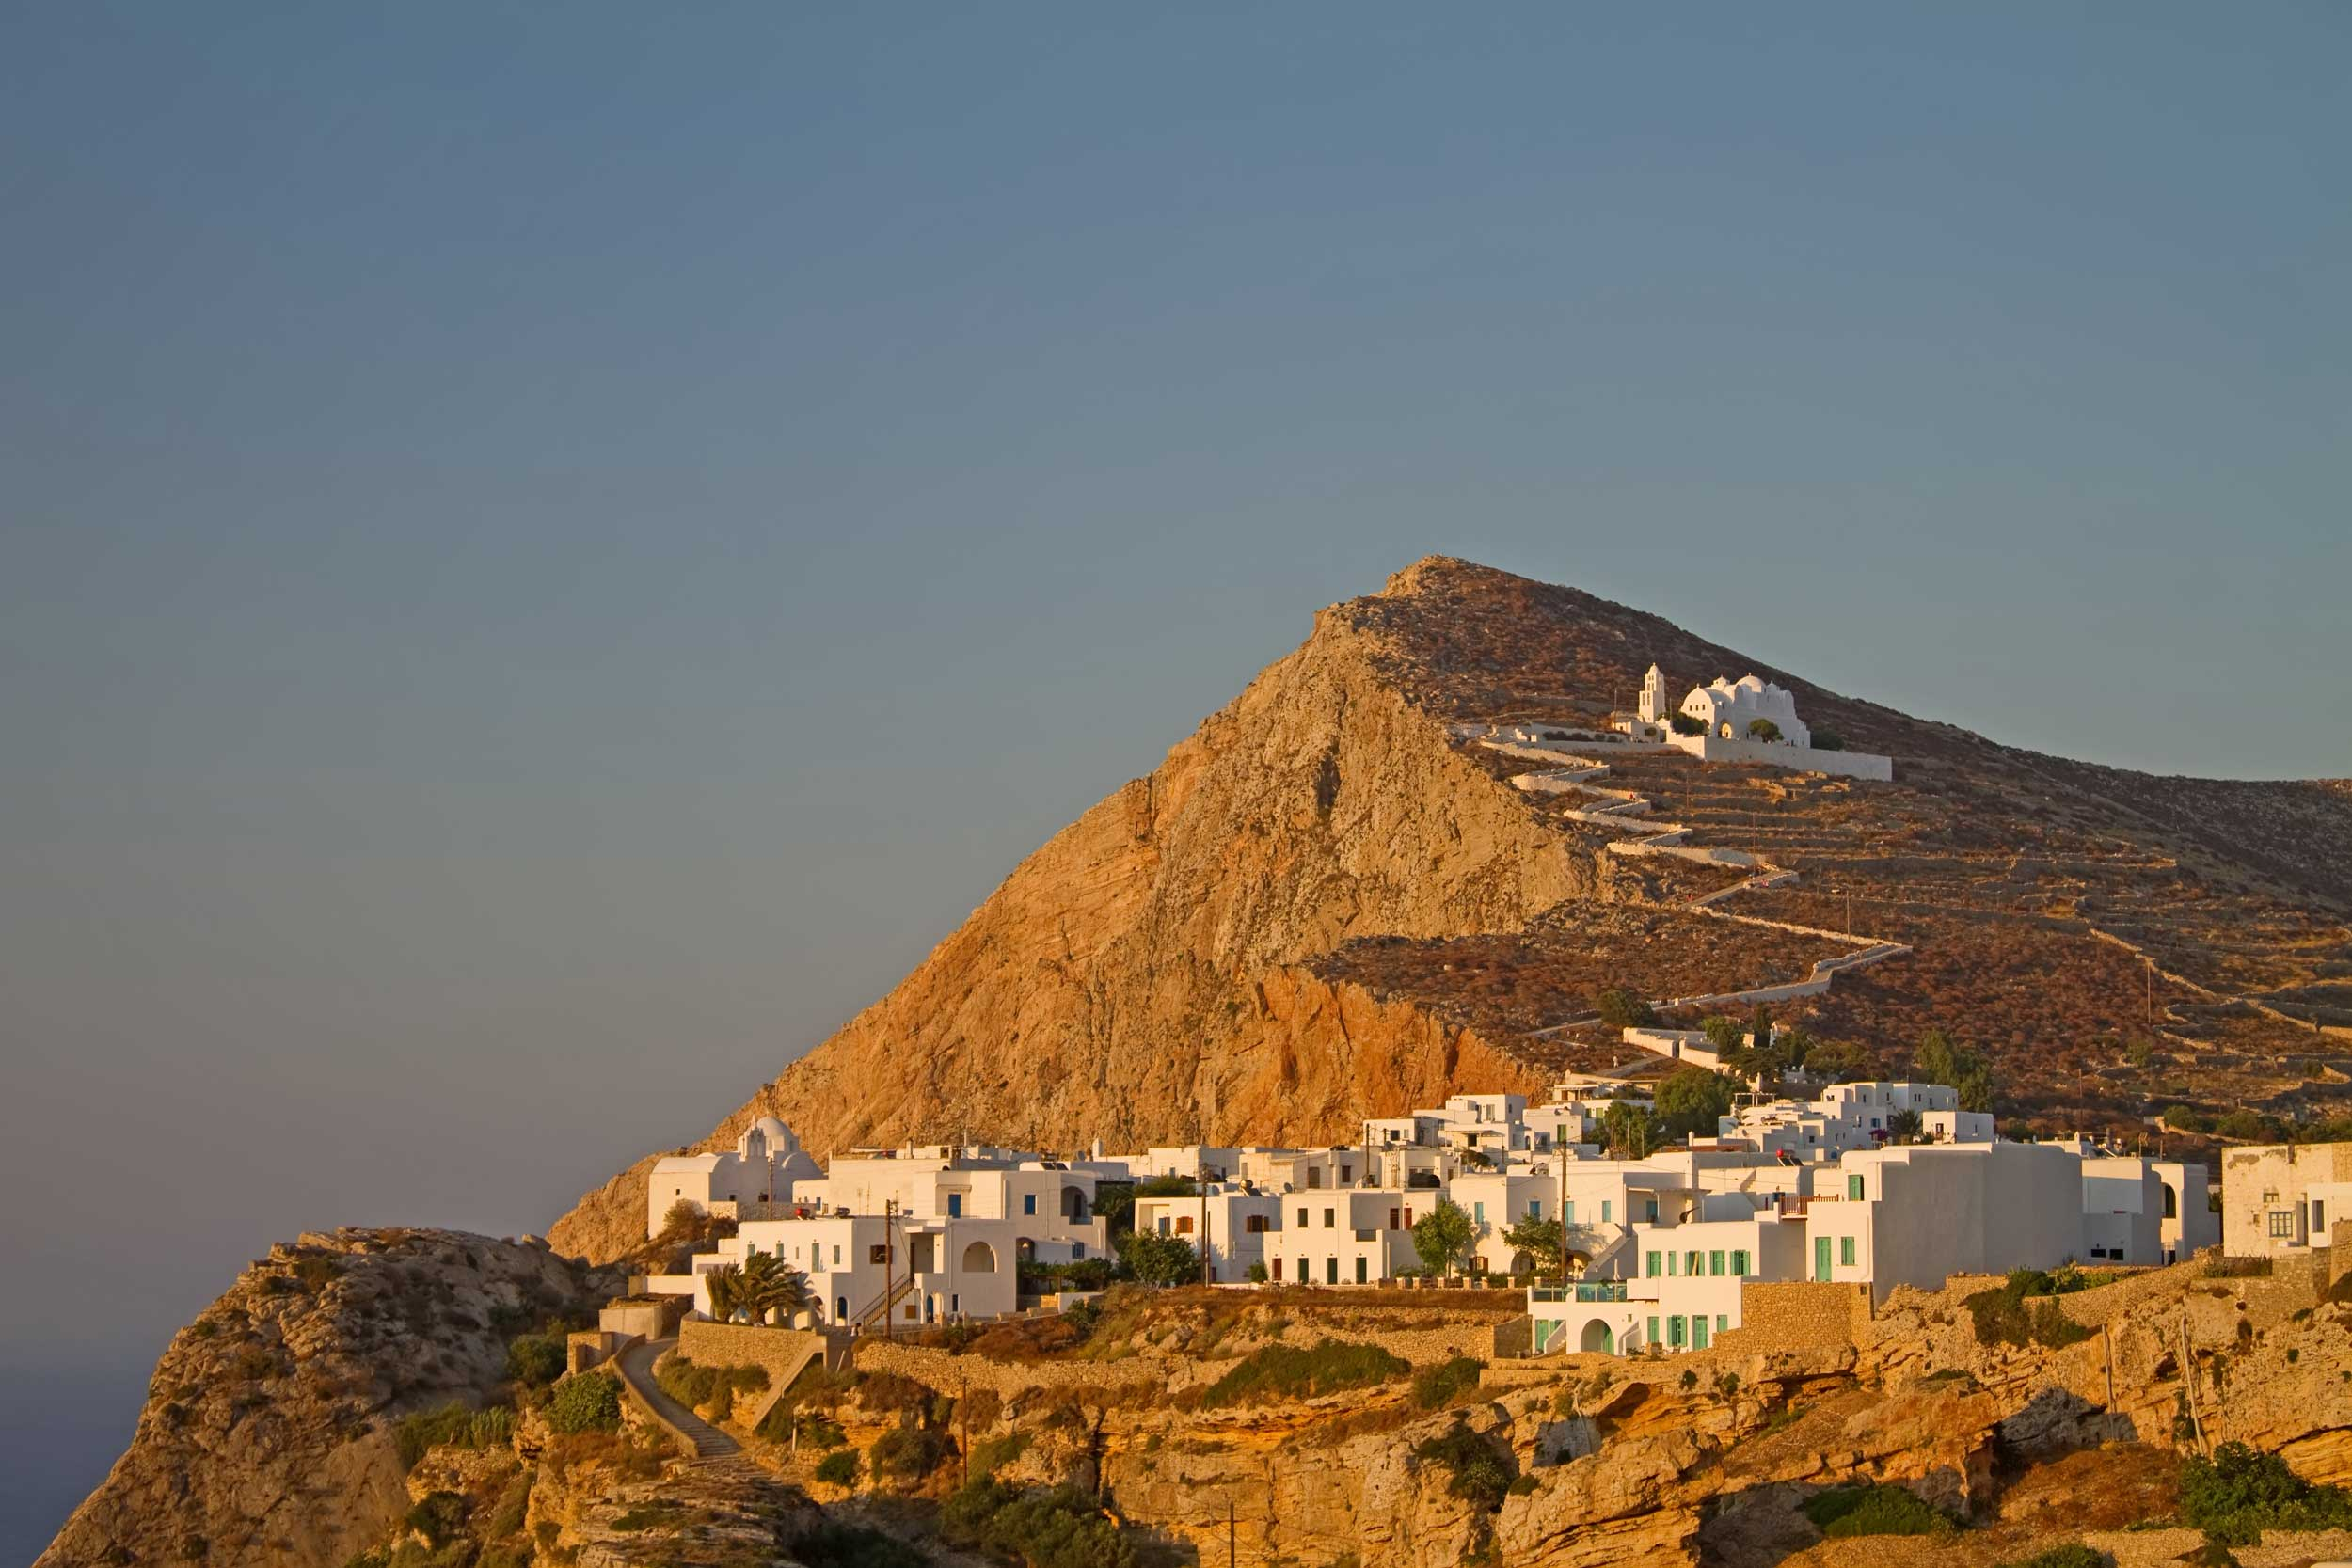 A village and a zigzag pathway up a rock hillside to a white church bathed in an orange glow, Greece